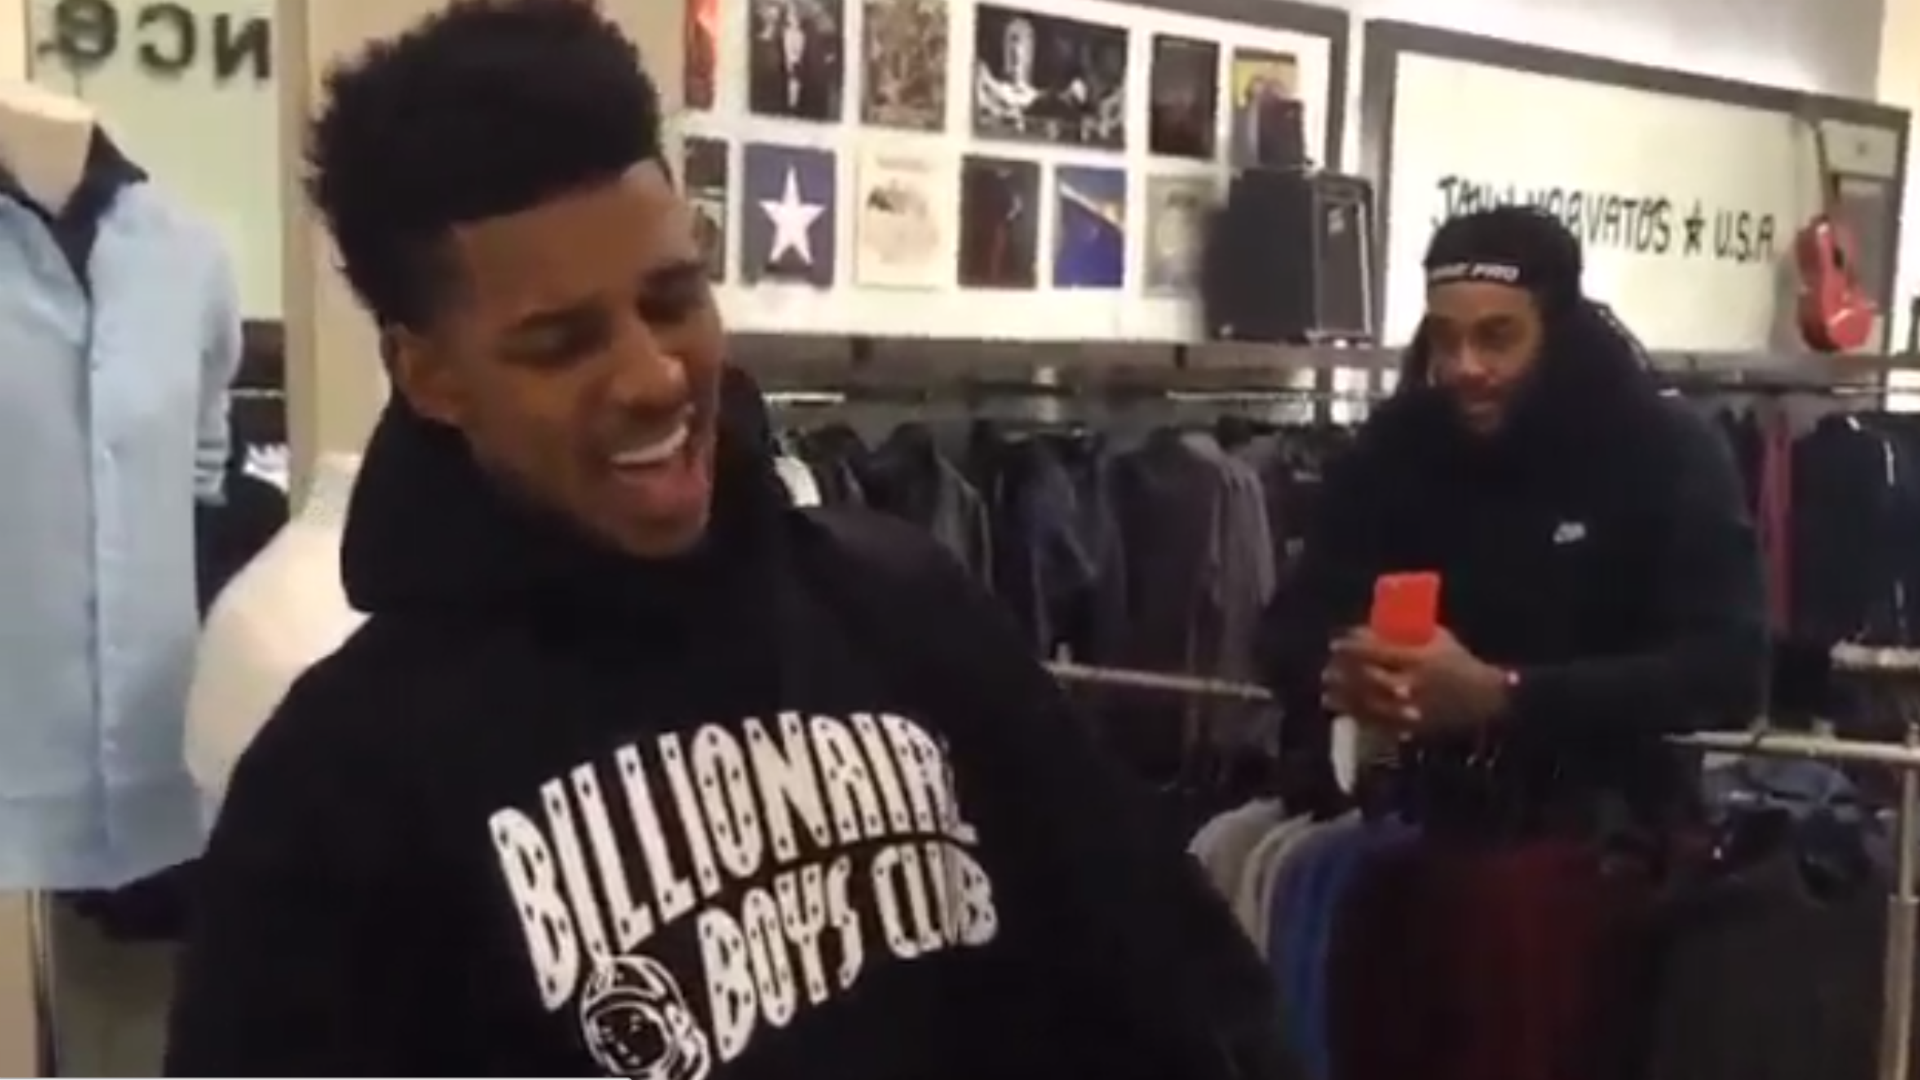 Quotes Critics Statue Nick Young Singing Us News Ftr Mpoukykbwsijbuecz